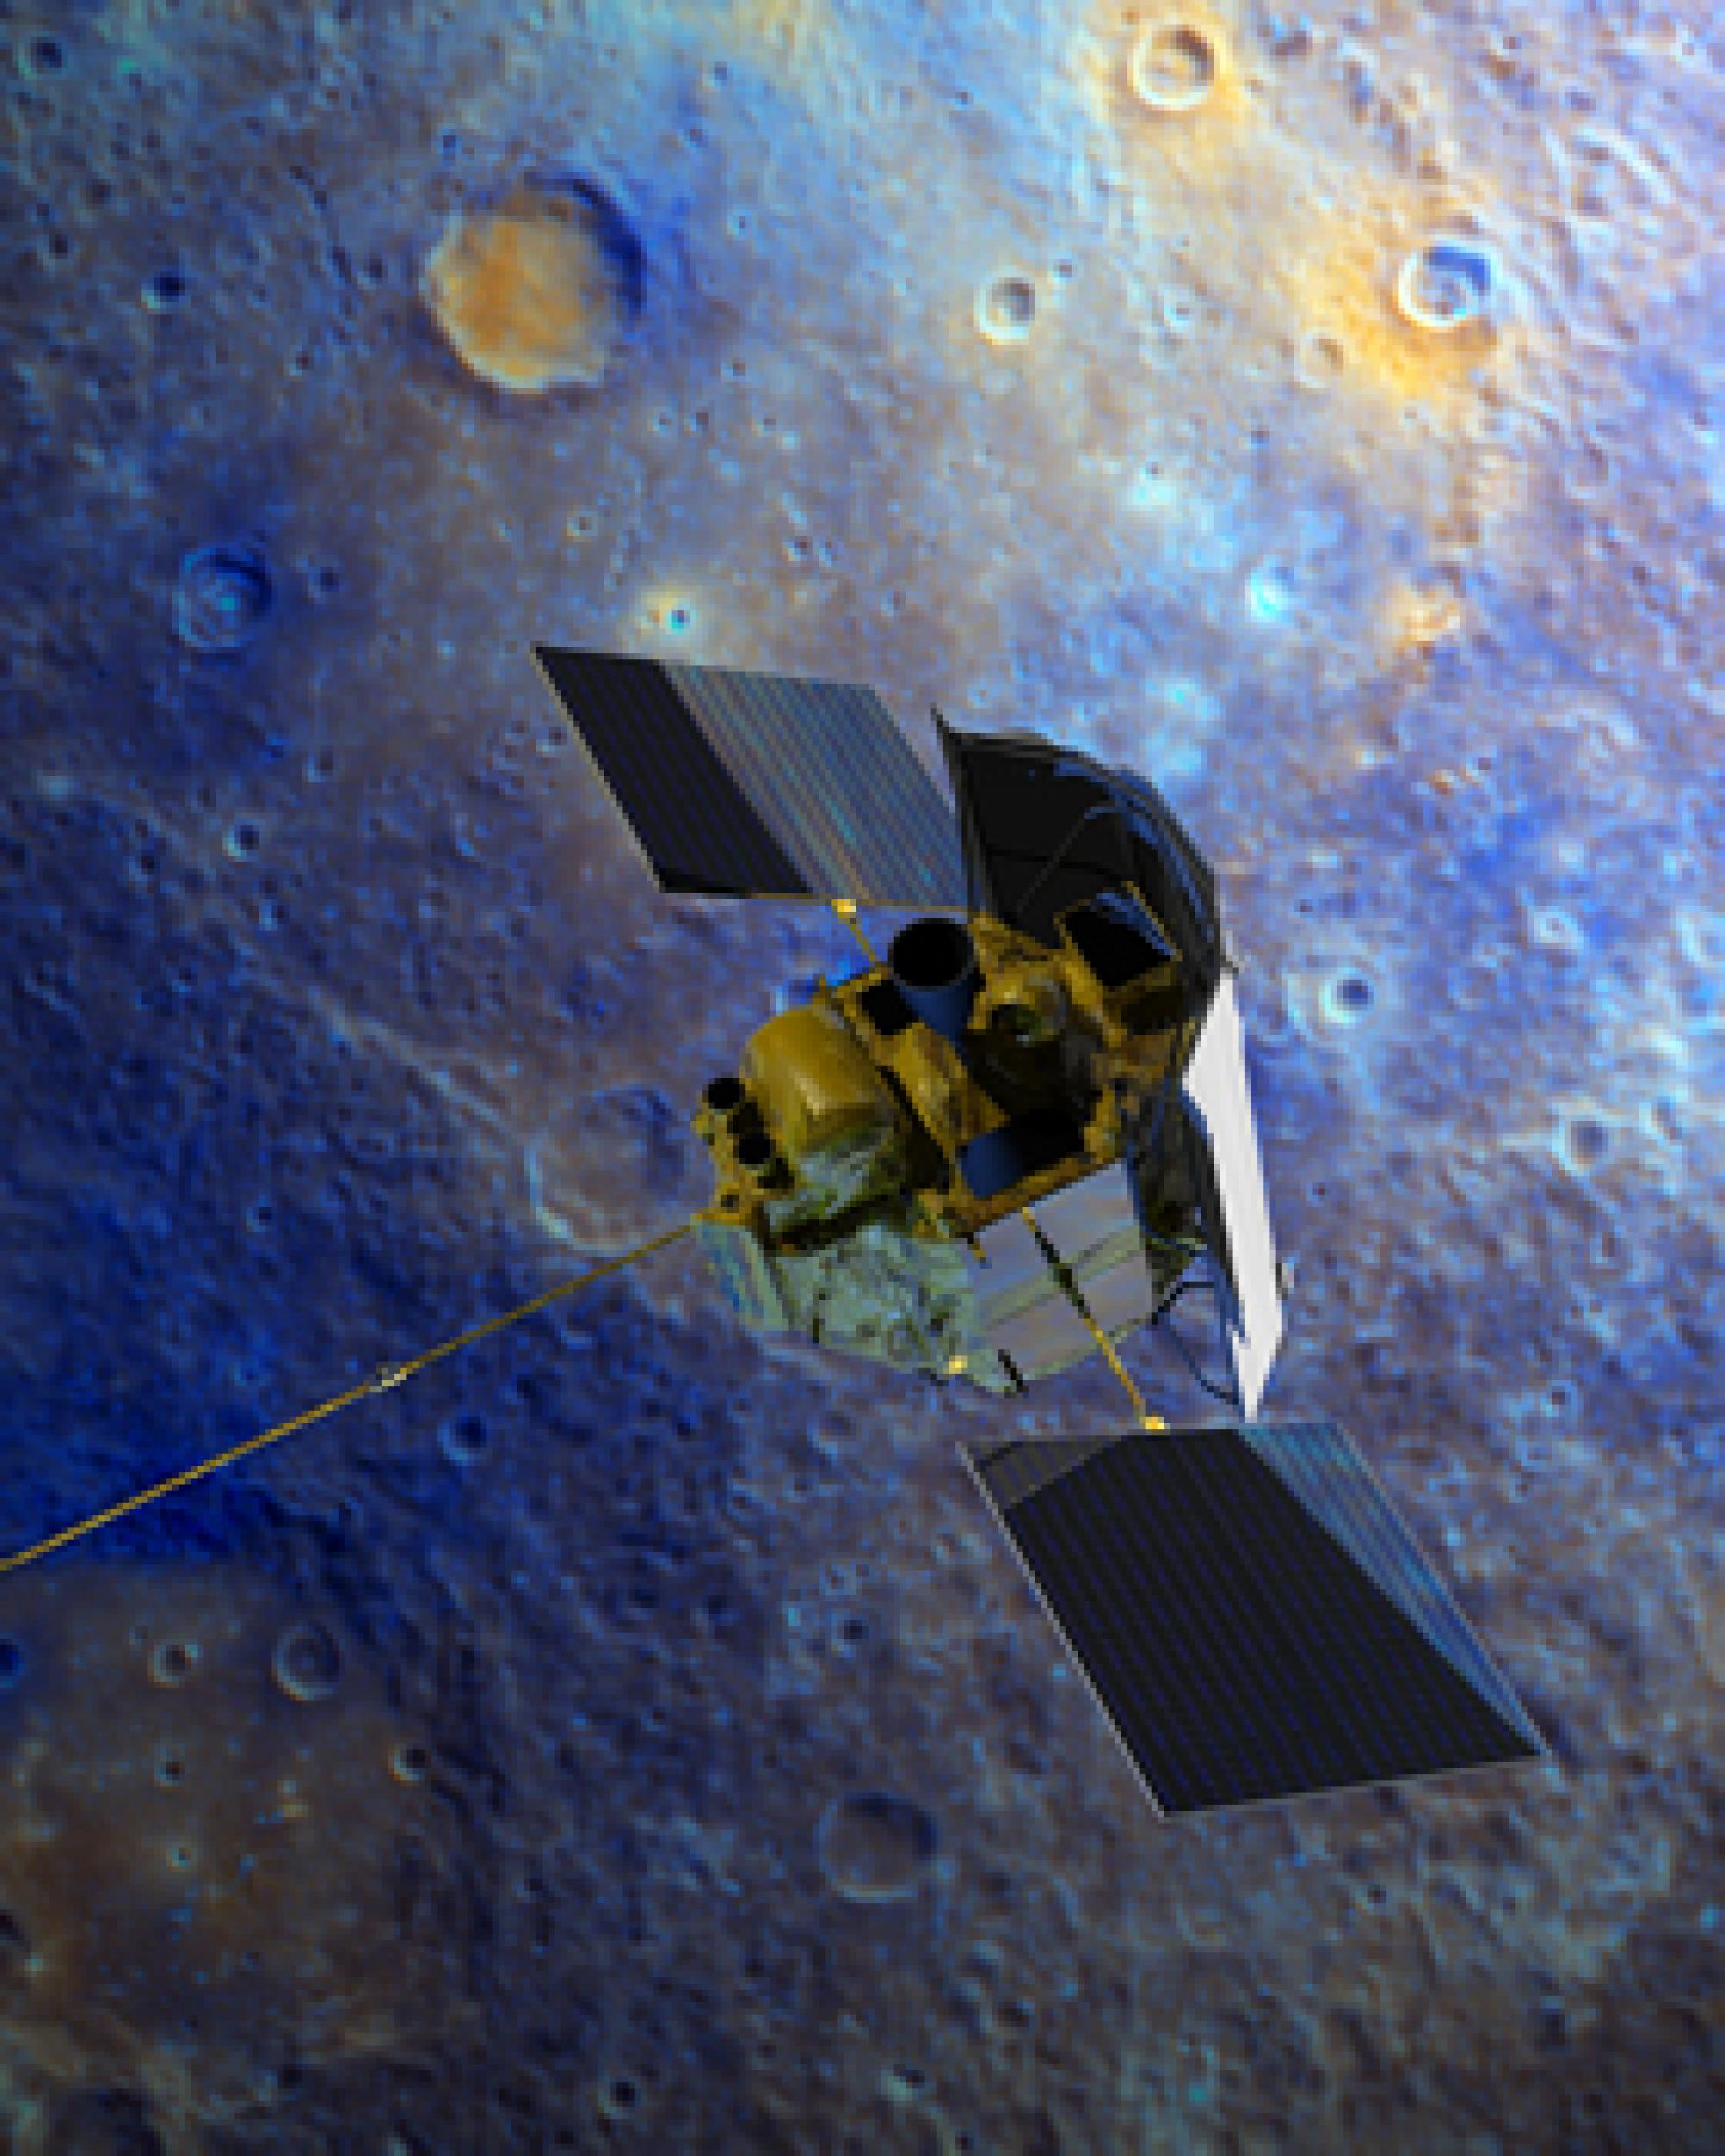 The MESSENGER spacecraft will orbit Mercury in an effort to study the geologic history, the enigmatic magnetic field, the surface composition and other mysteries of the planet. The shield visible on the probe's right side protects its sensitive instrument